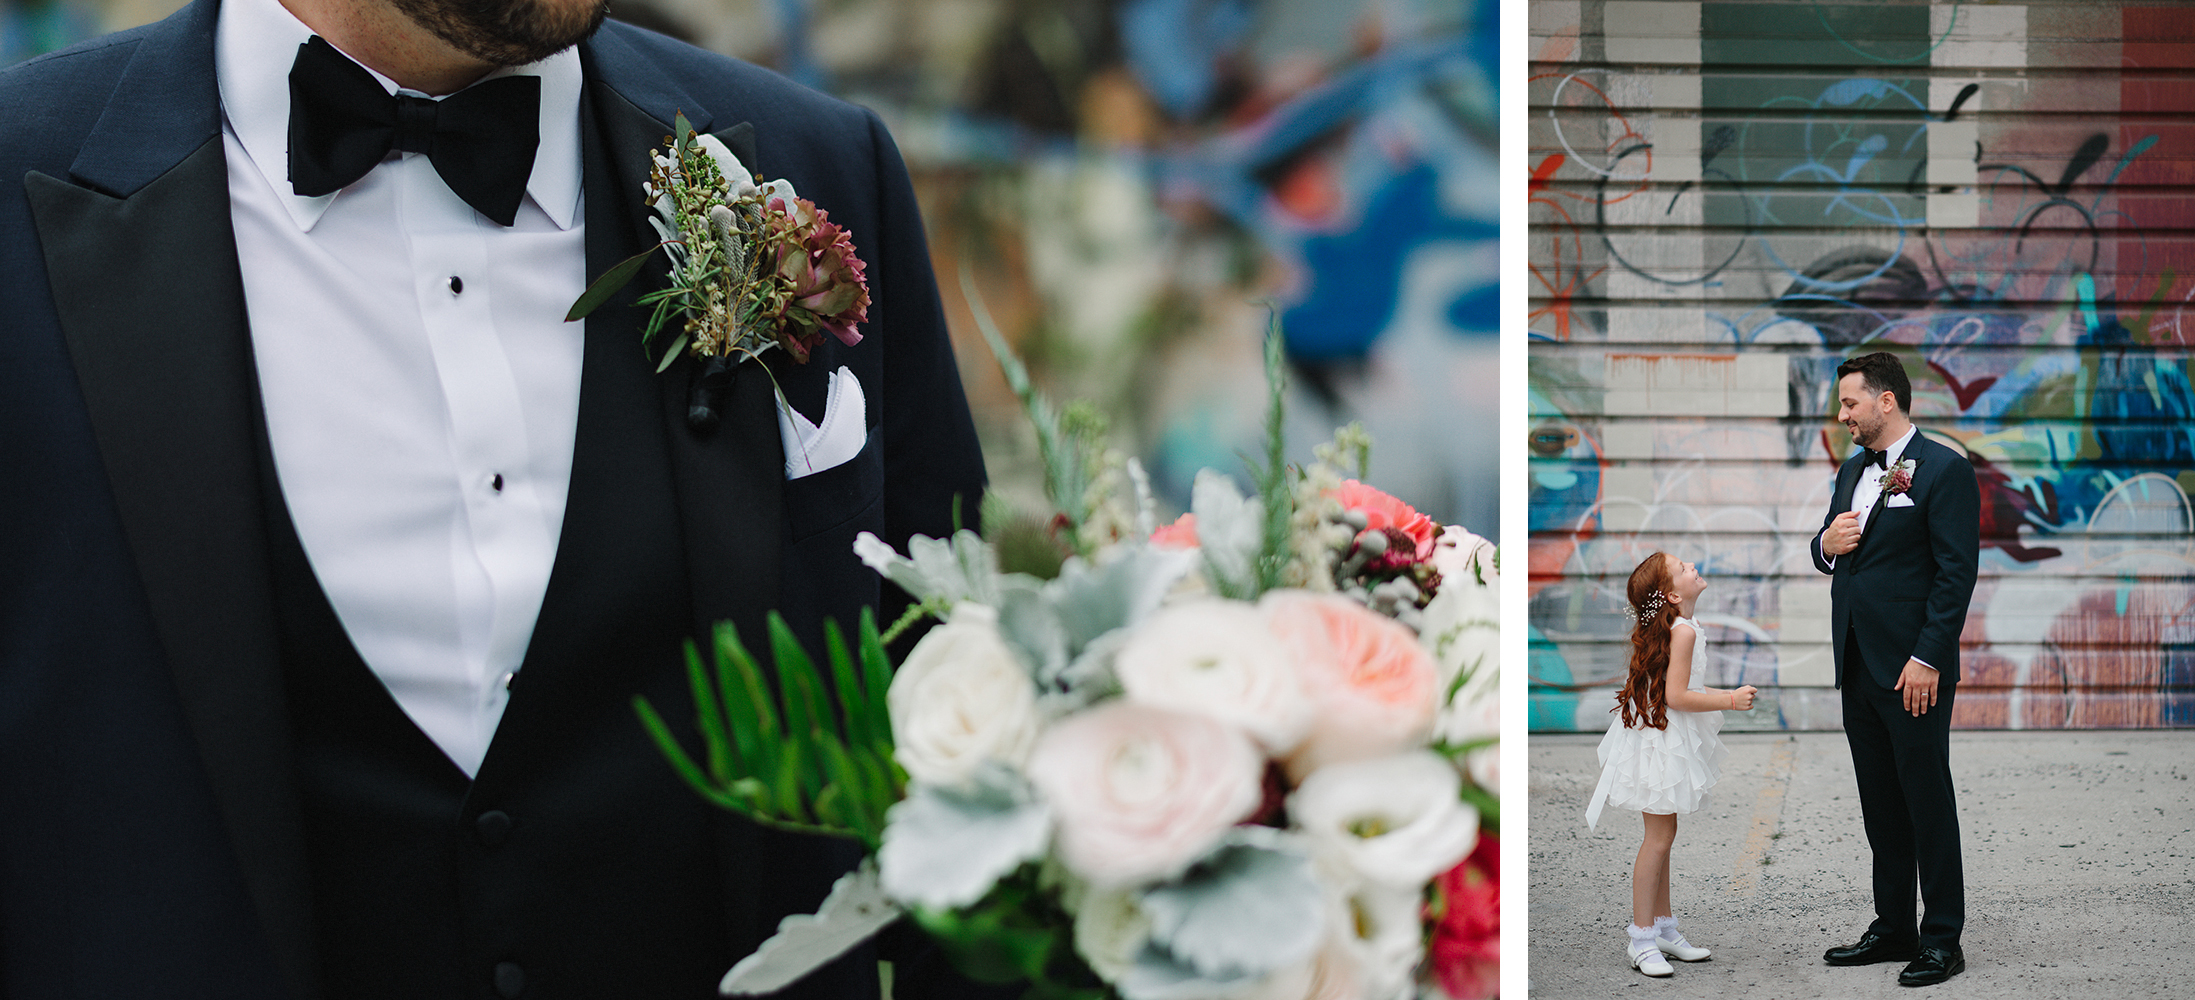 torontos-best-wedding-photographers-ryanne-hollies-photography-photojournalism-artistic-moody-toronto-airship37-graffiti-editorial-magazine-fashion-inspiration-groom-bouquet-flowers-boutineer-wild-flowers.jpg